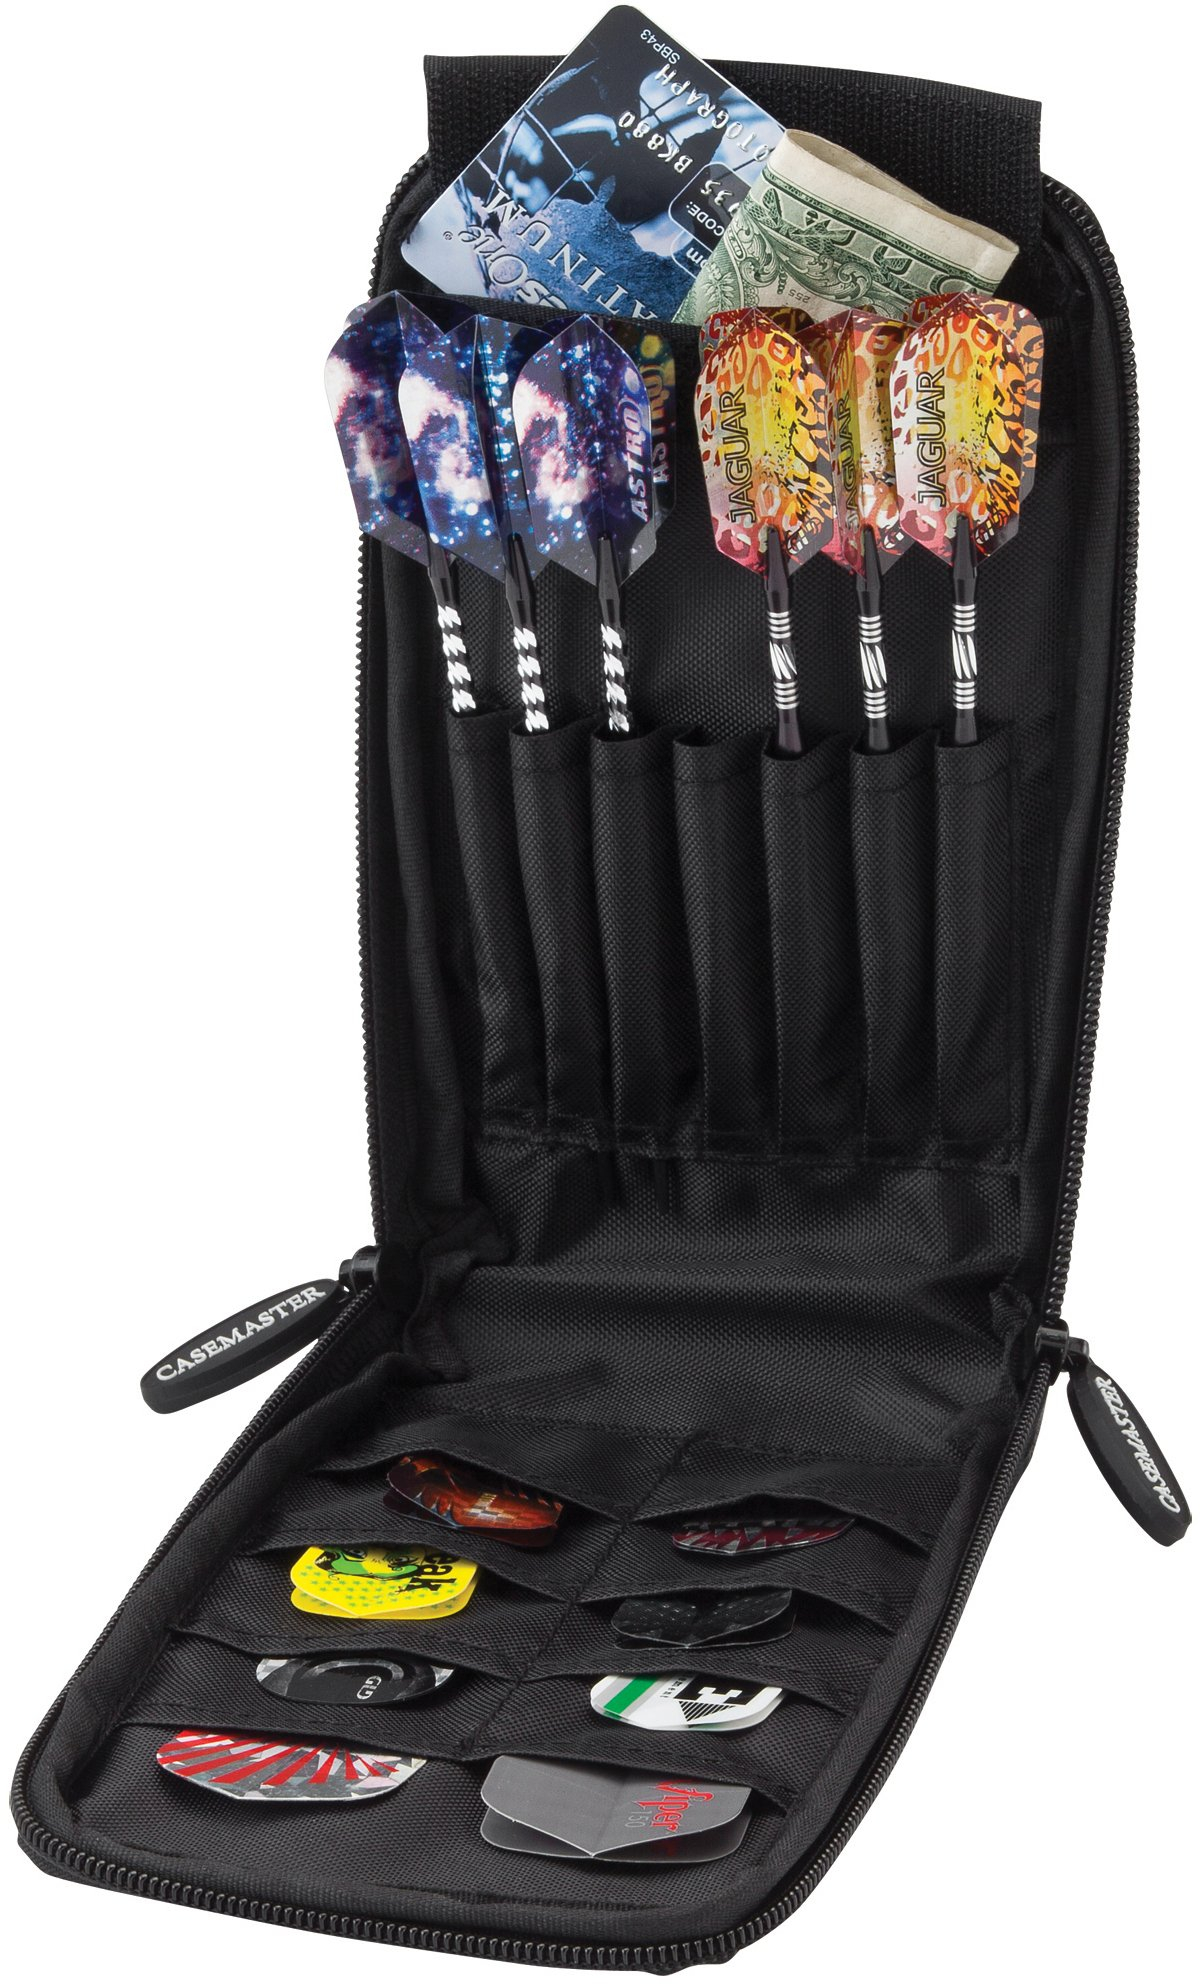 Casemaster Mini Pro 6 Dart Leatherette Storage/Travel Case, Black by Casemaster by GLD Products